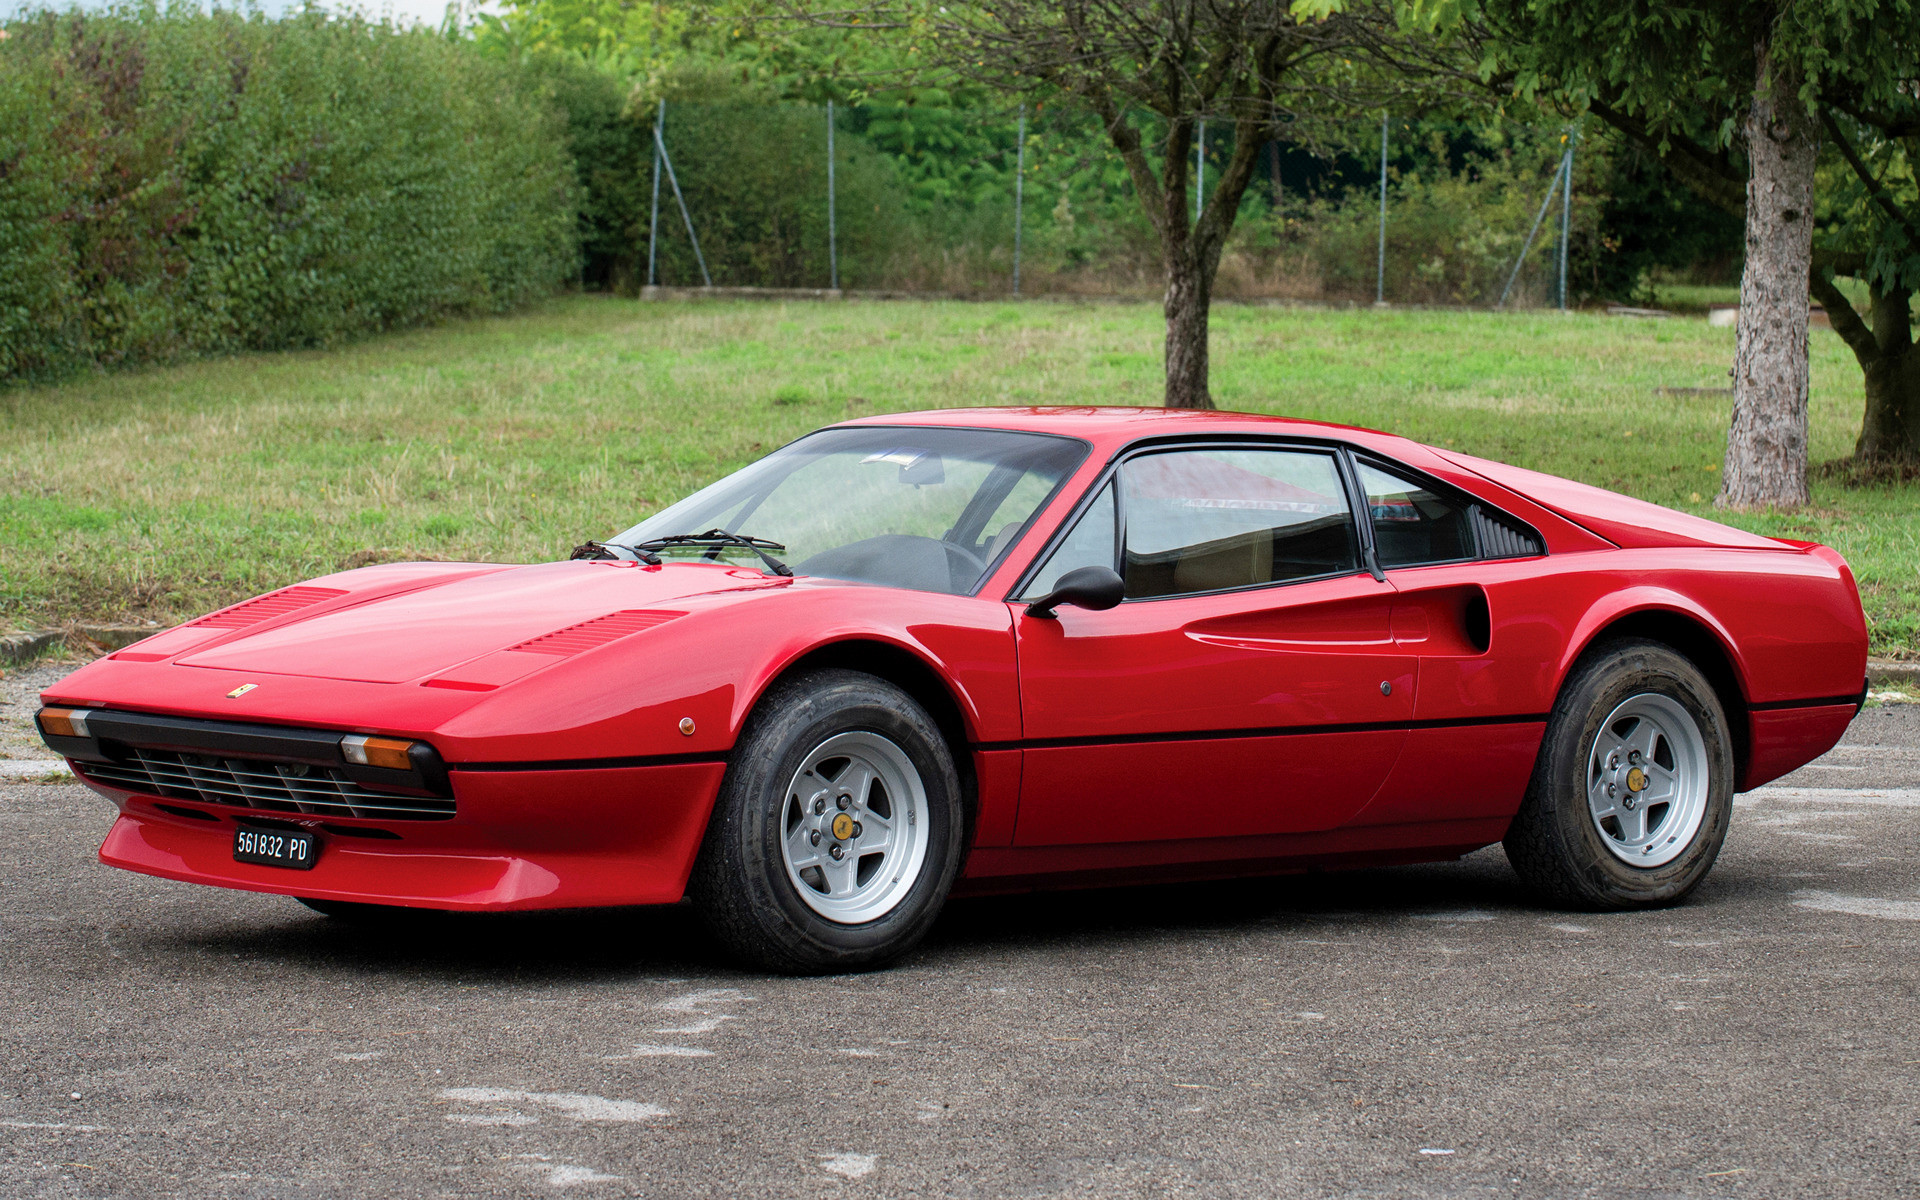 Ferrari 308 Gtb With Front Spoiler 1977 Wallpapers And